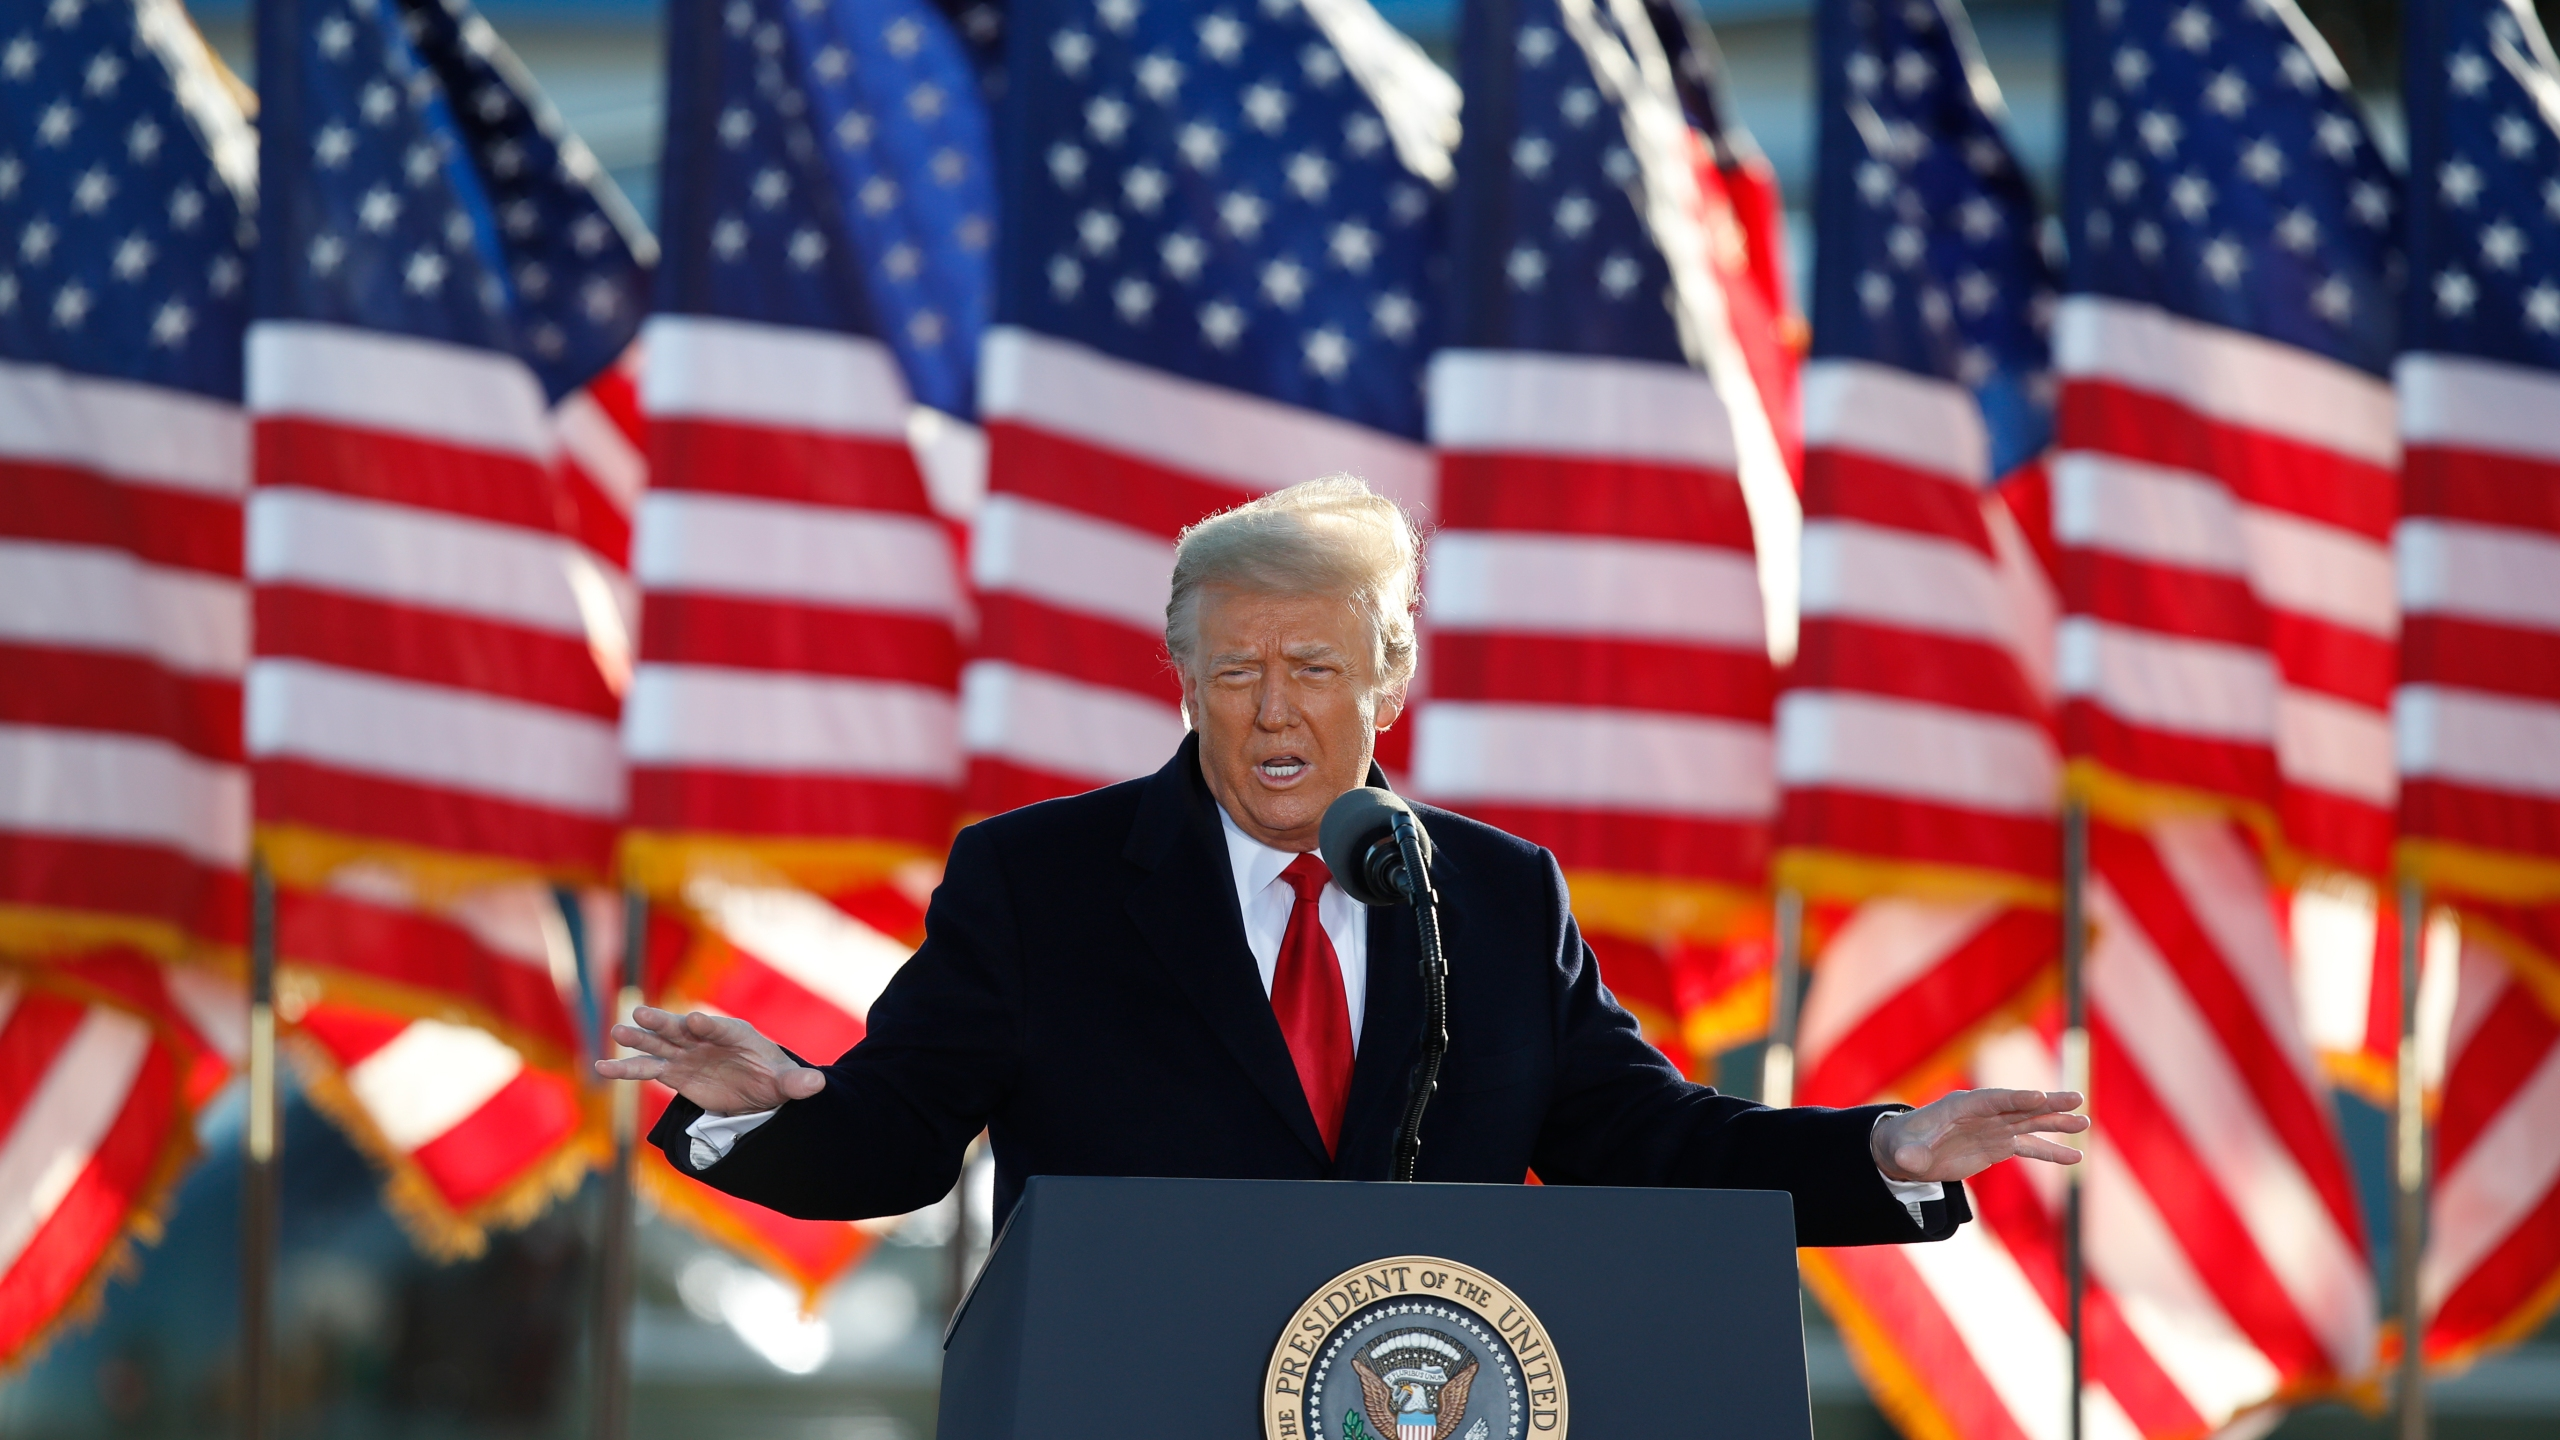 President Donald Trump speaks to crowd before boarding Air Force One at Andrews Air Force Base, Md., in this Wednesday, Jan. 20, 2021, file photo. (AP Photo/Luis M. Alvarez, File)